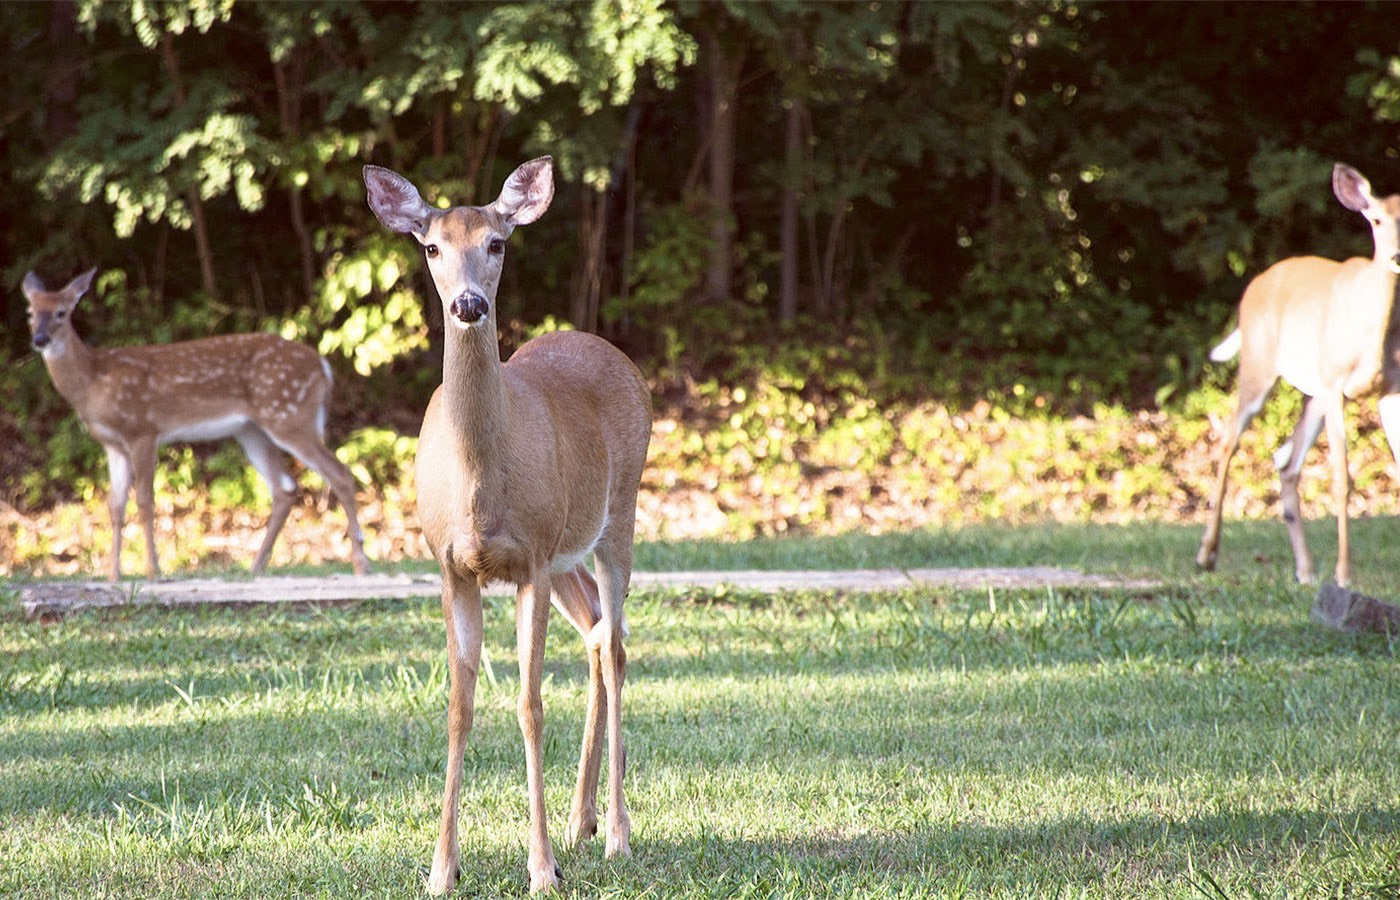 Deer roaming on lawn near the woods